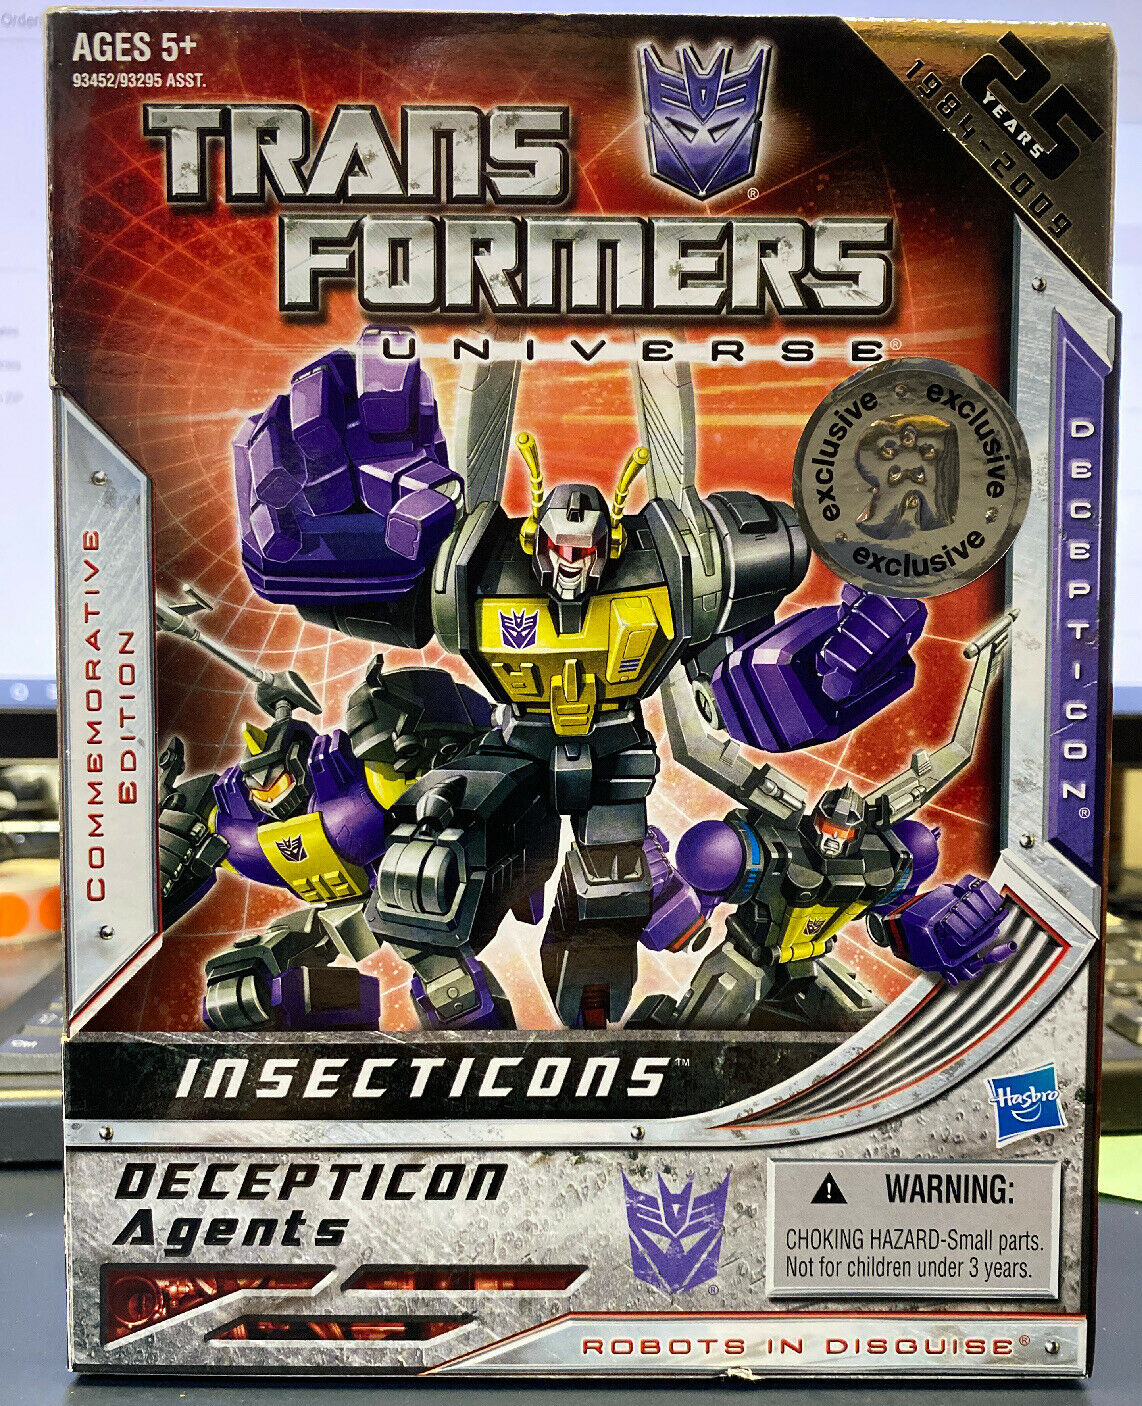 G1 Transformers Universe lnsectors inganno AGENTE 25 anni 19842009 Robot